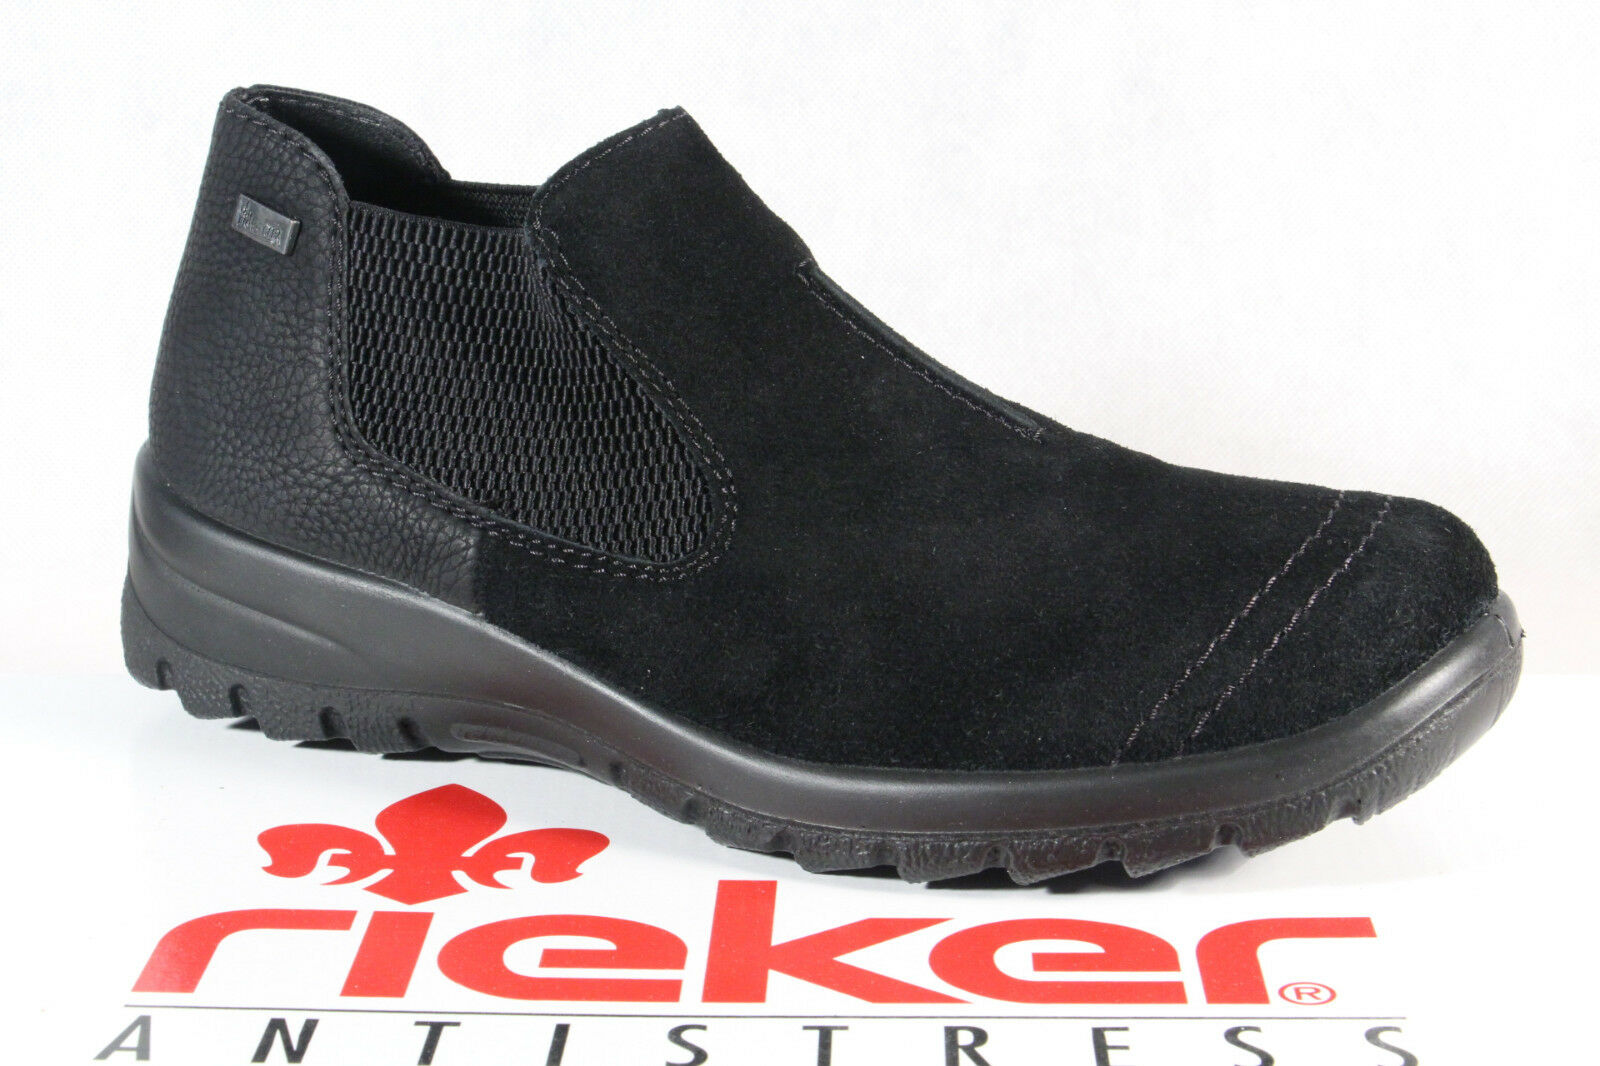 Rieker Slippers Ankle stivali Low scarpe stivali Winter  scarpe L7190 Echtledertex Nuovo  incredibili sconti